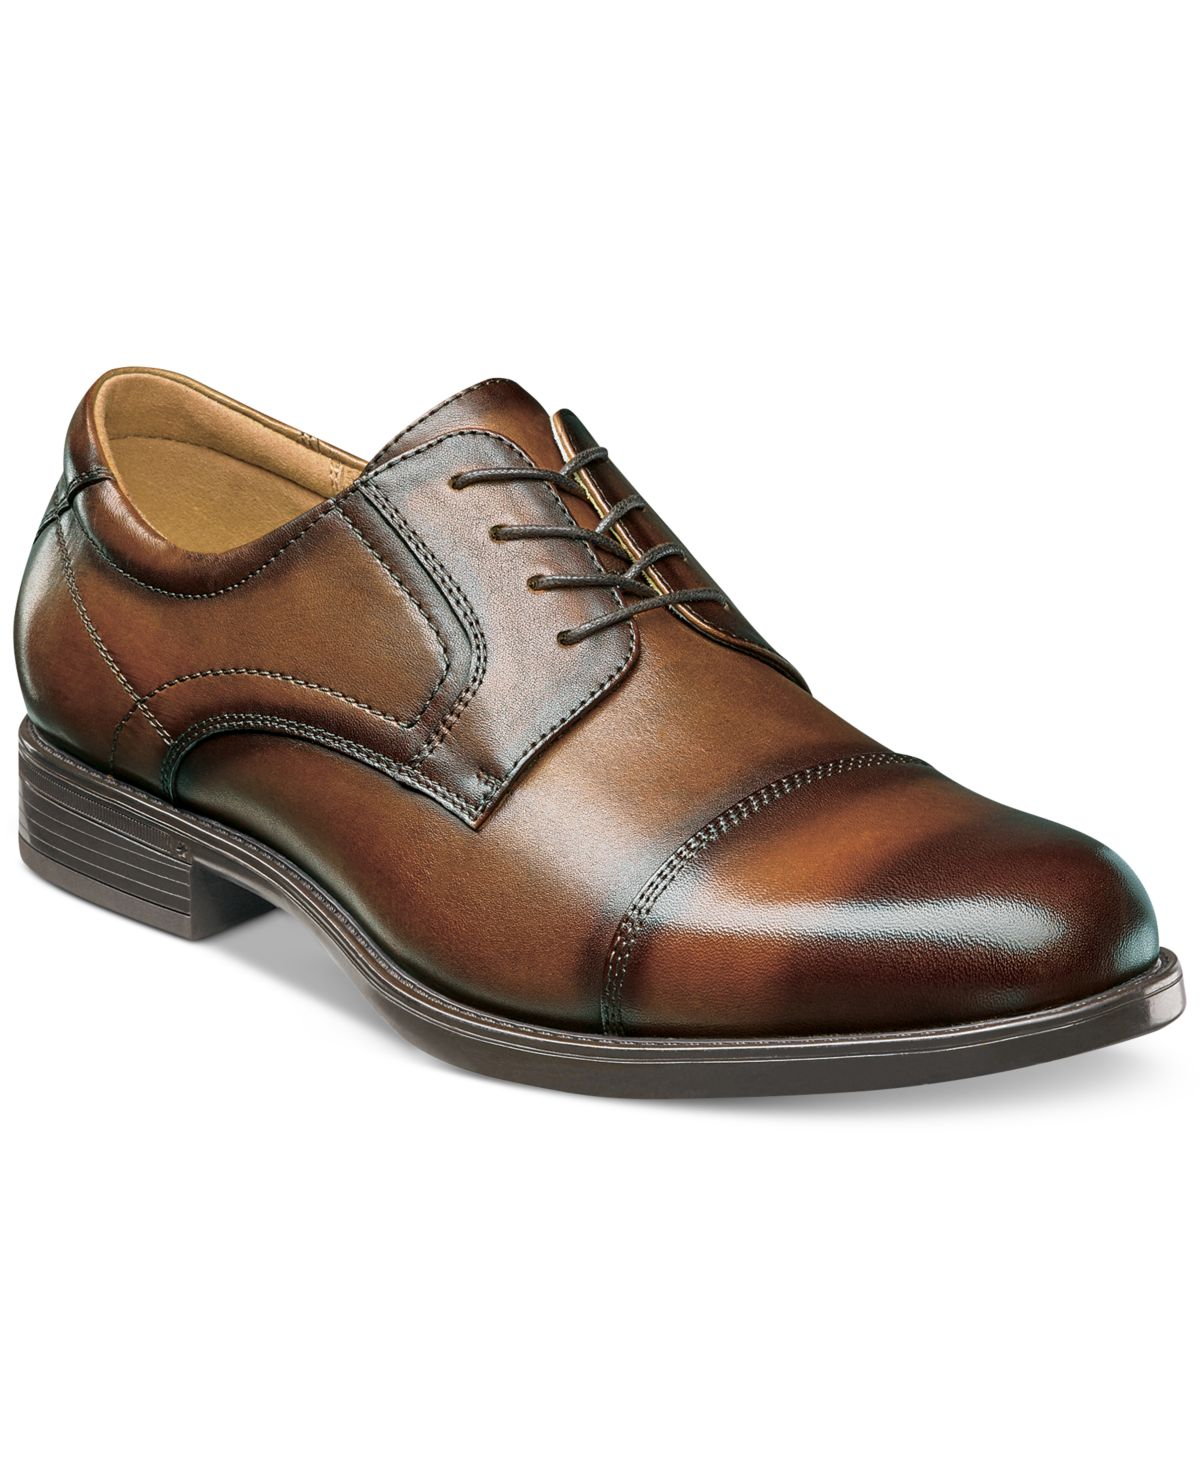 Florsheim Men's Midtown Oxfords by